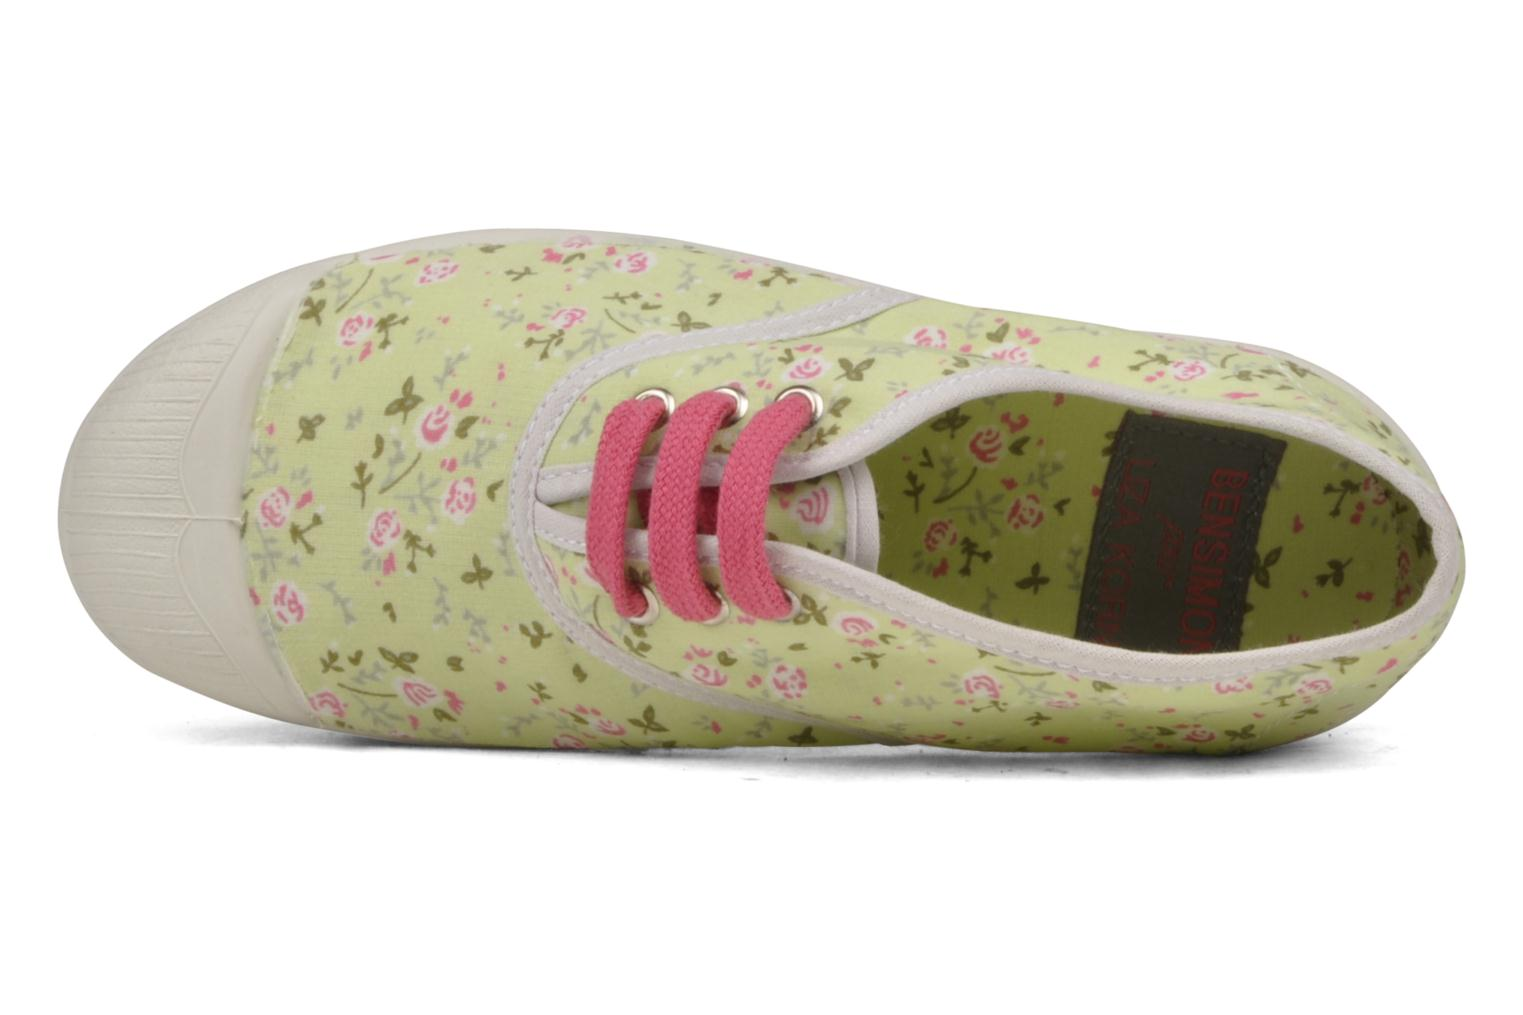 Bensimon By Liza Korn Tennis Lacets Print Trainers in ...